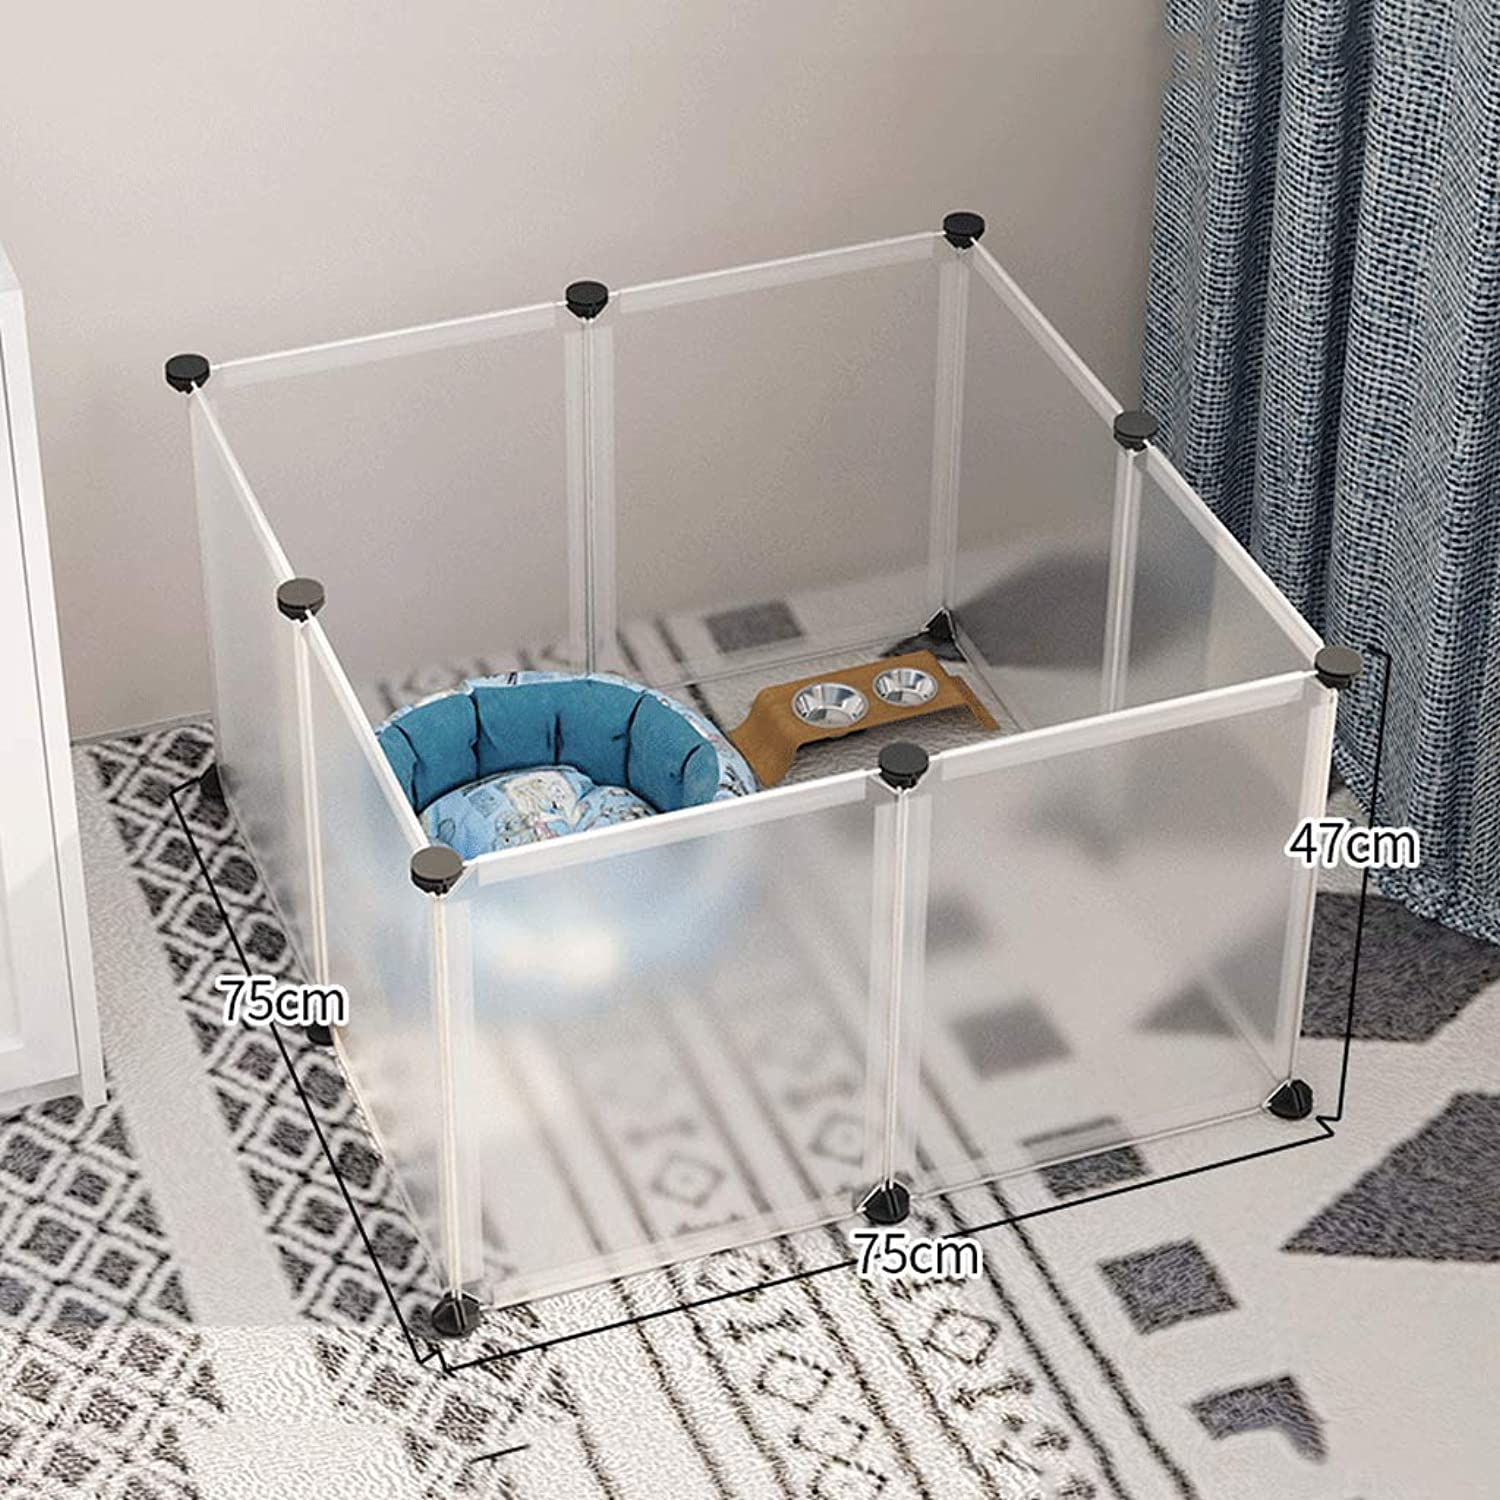 AAGWCWWWL Dog Playpen, Portable Fence Small Animals, Popup Kennel Crate Fence Tent, Transparent White